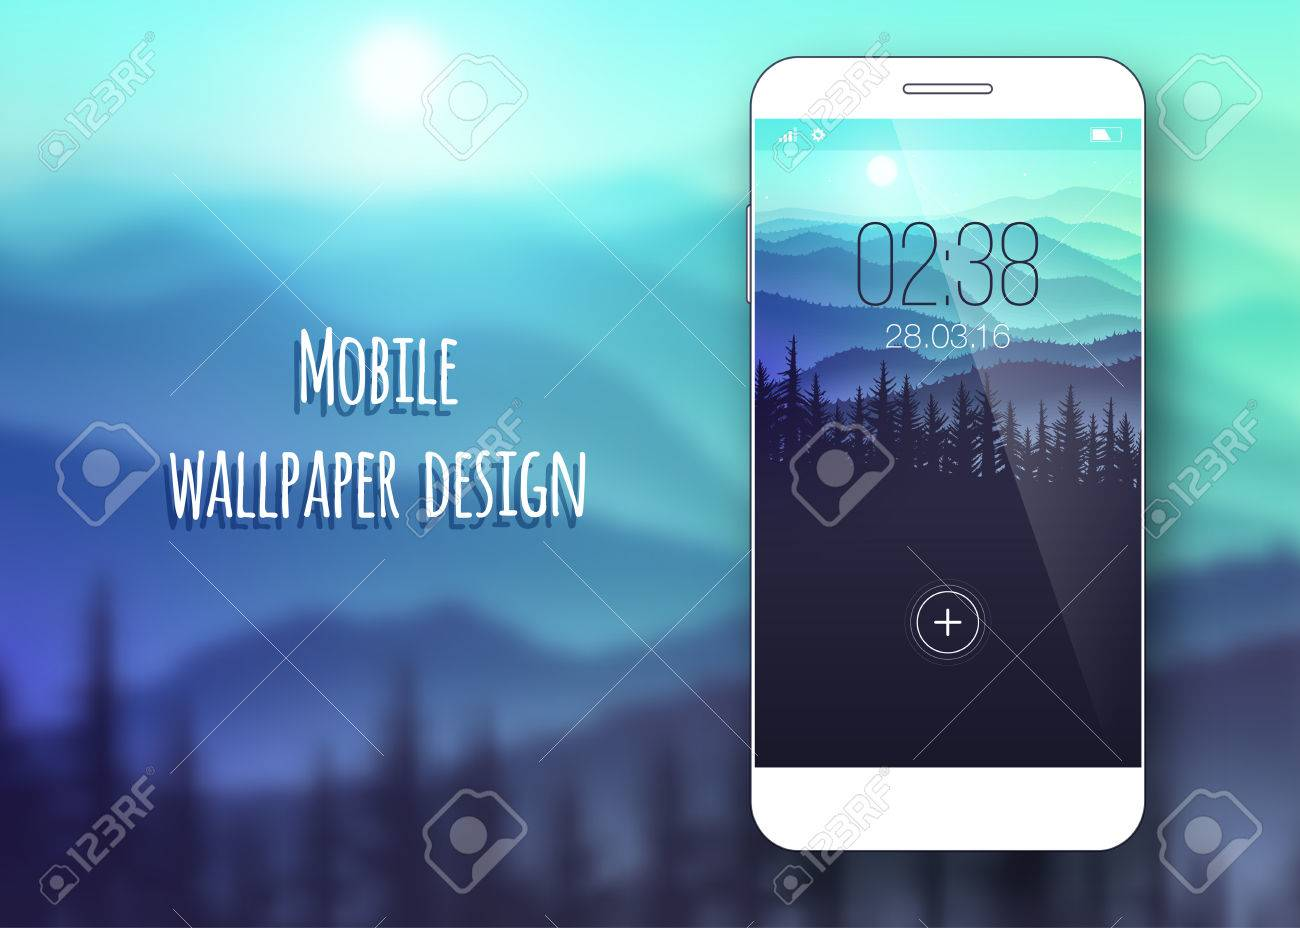 Colorful mobile interface wallpaper on blurred background. Mobile Wallpaper. Clean and modern design. Nature. Vector illustration - 61774528